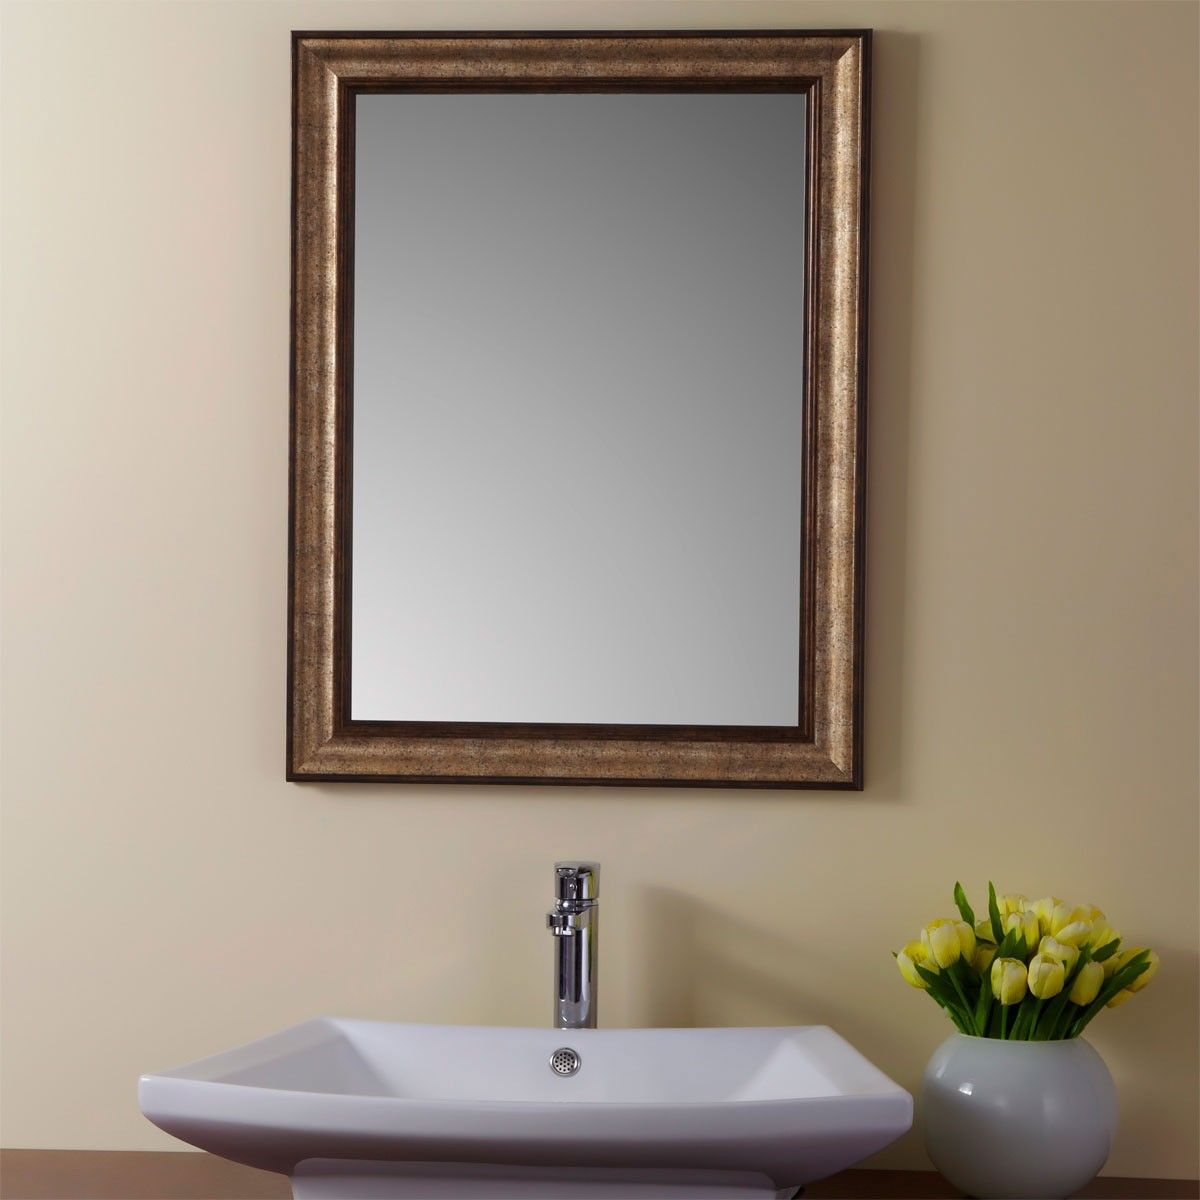 24 x 32 In Reversible Imitation Wood Frame Mirror (YJ-1951H)